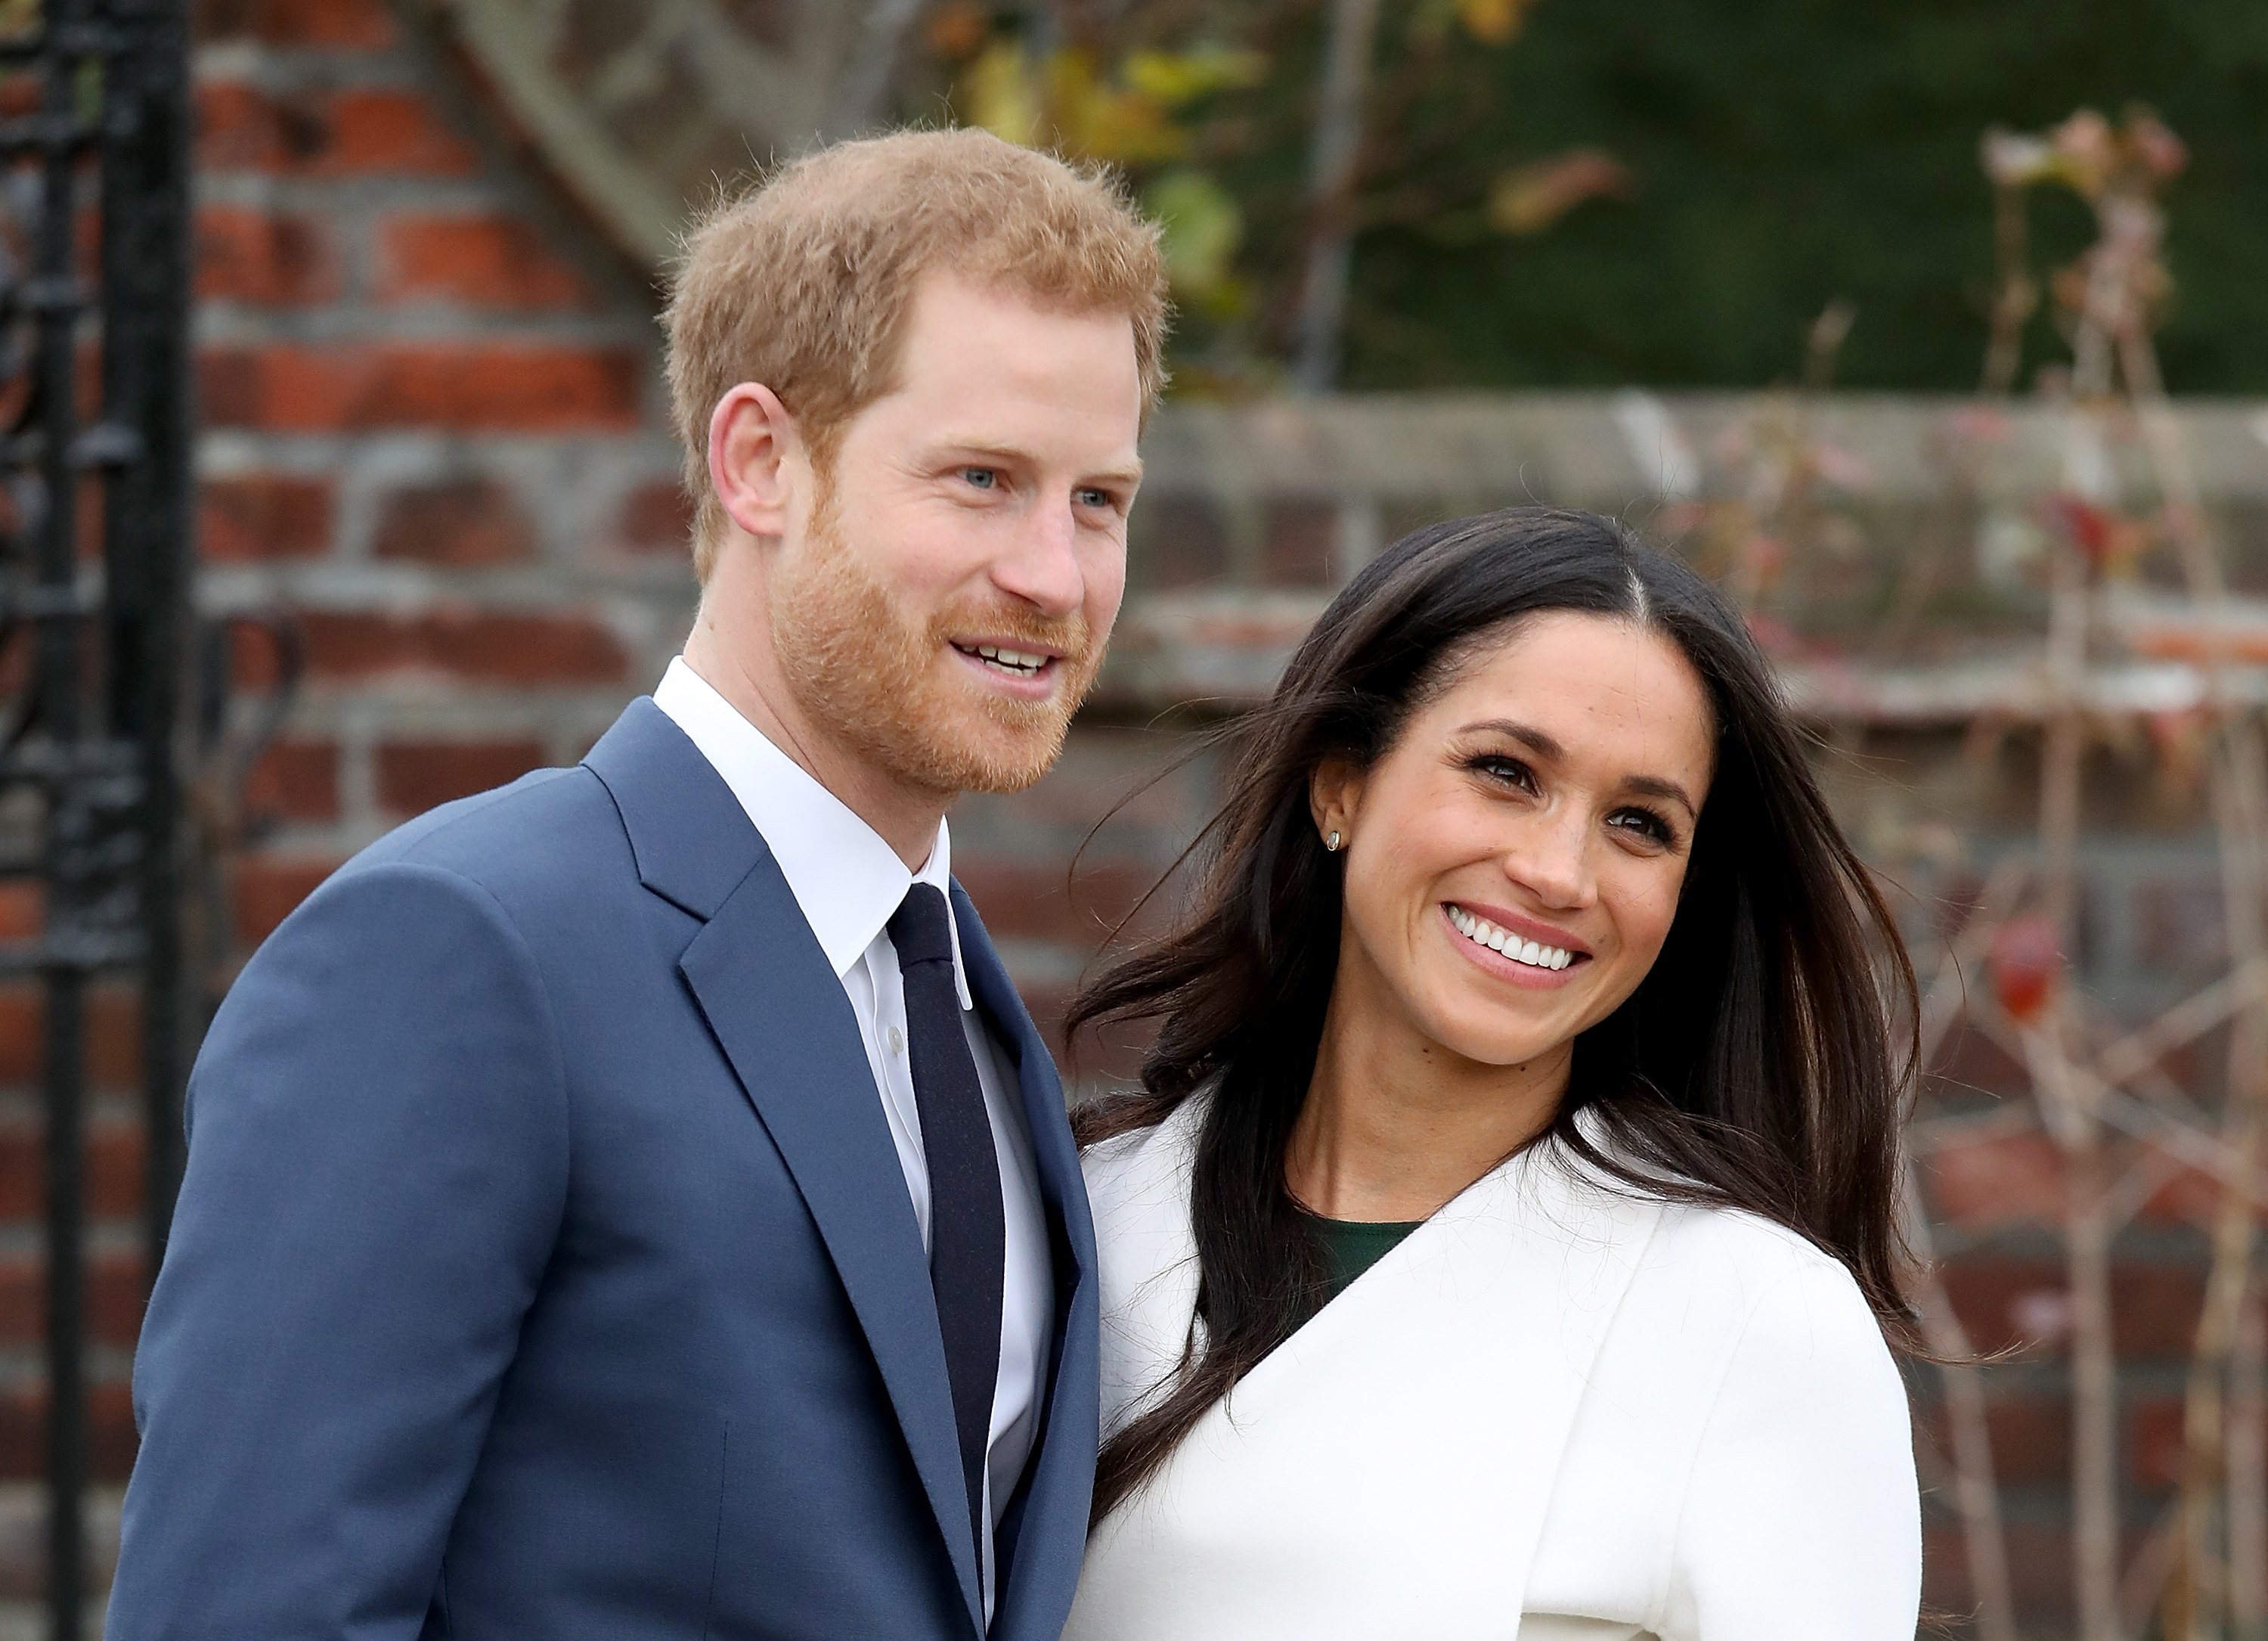 Prince Harry Meghan Markle personally deliver food to needy